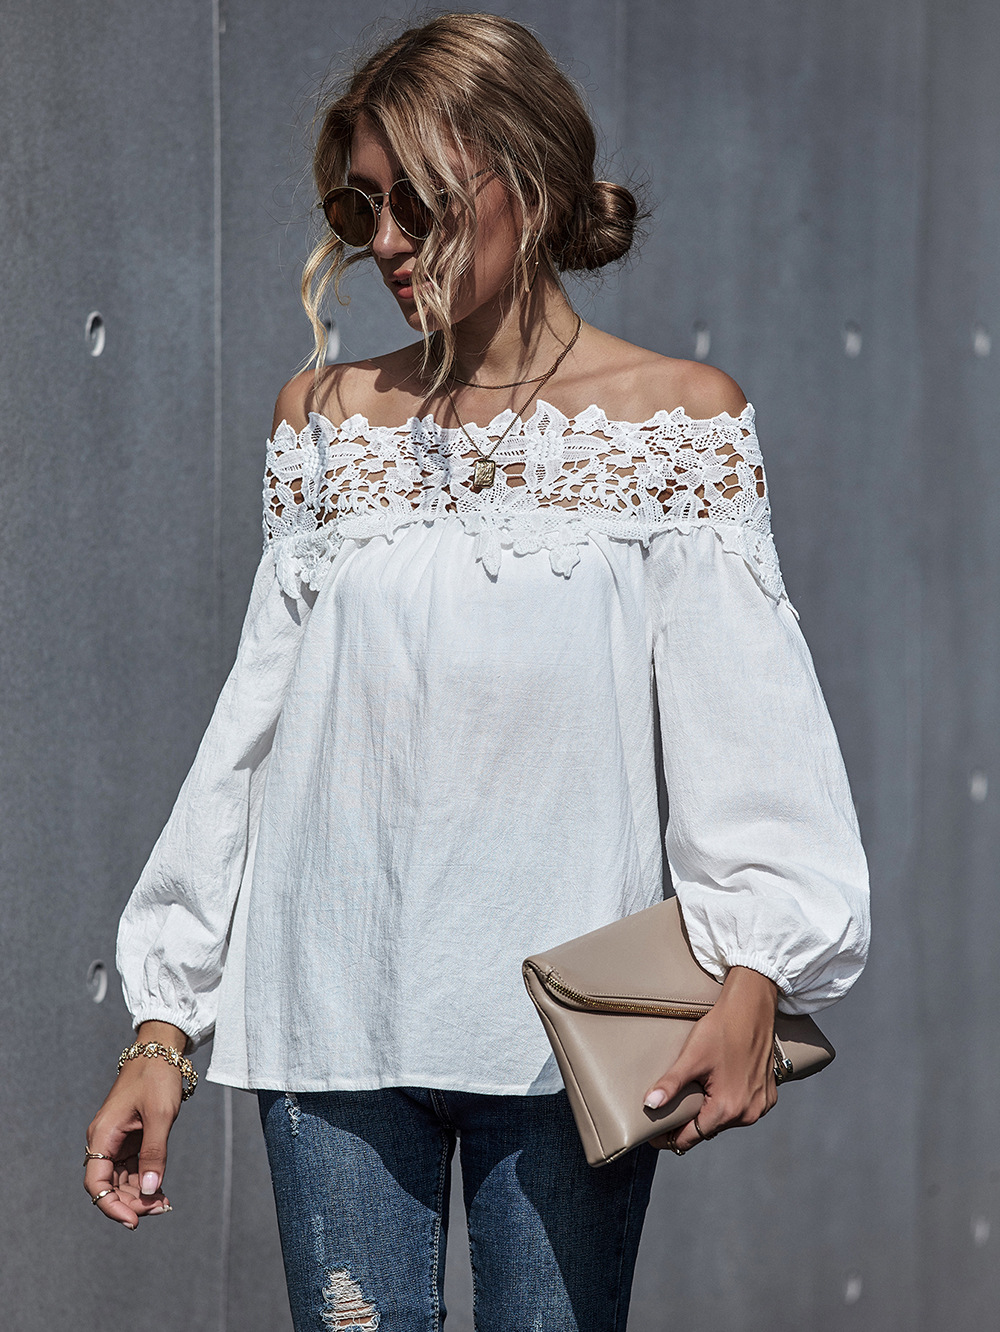 autumn and winter new women's lace stitching sexy one-shoulder puff sleeve blouse NSDF339